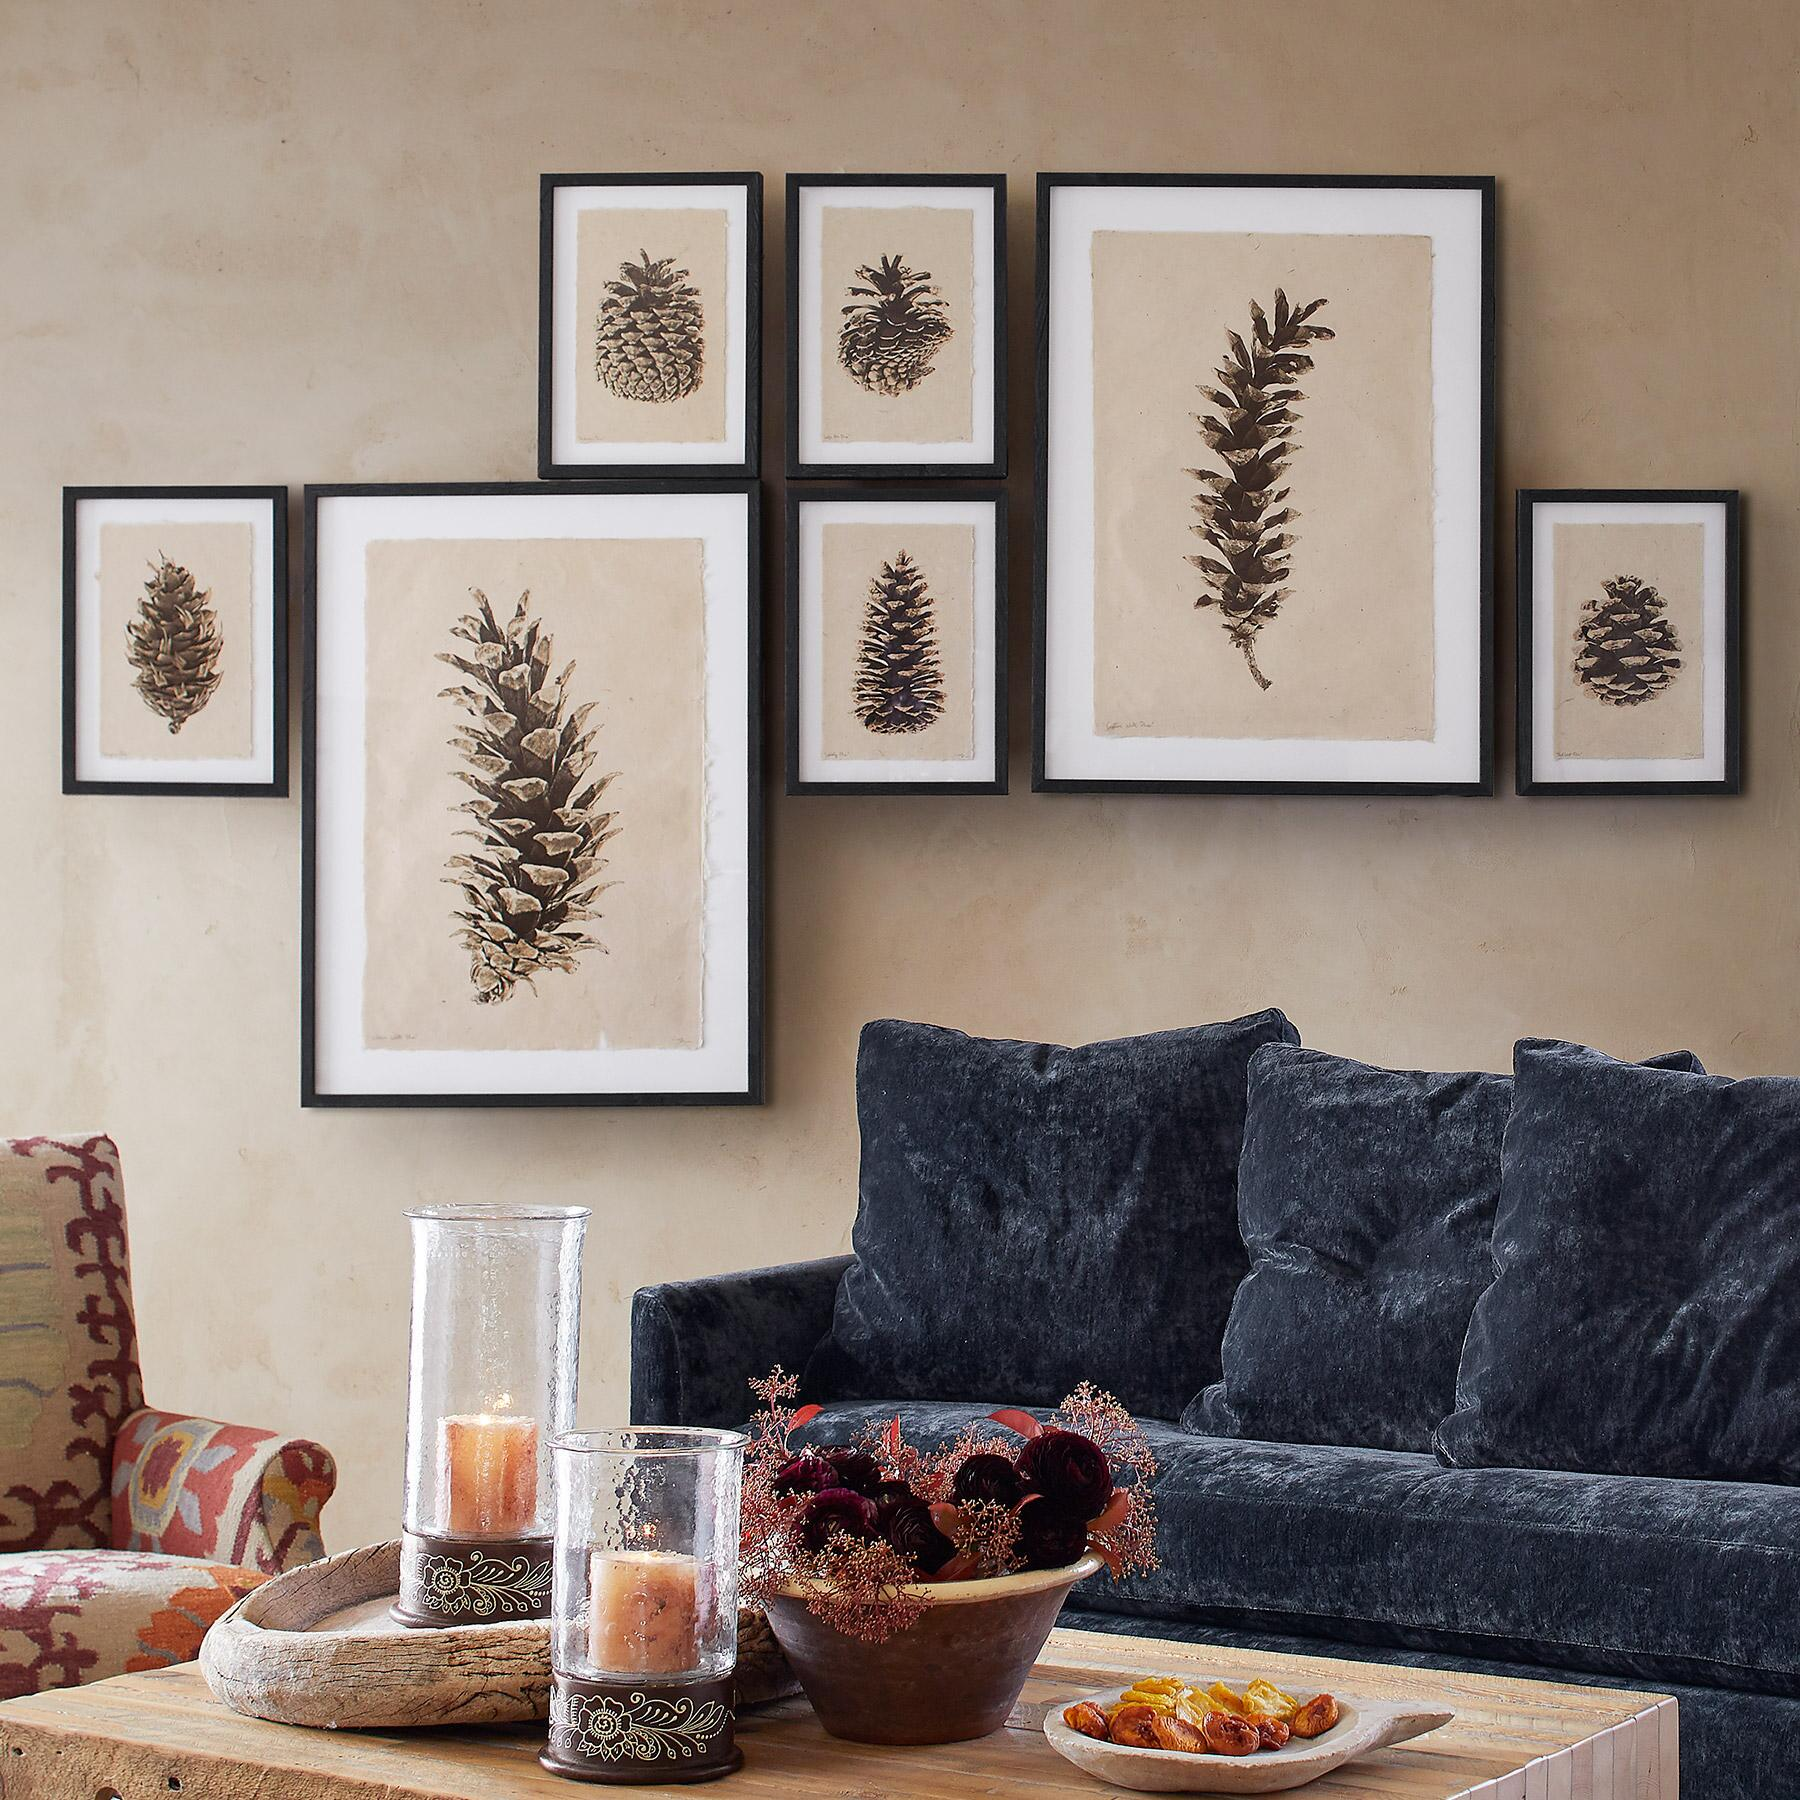 PINECONE STUDIES PRINT: View 2